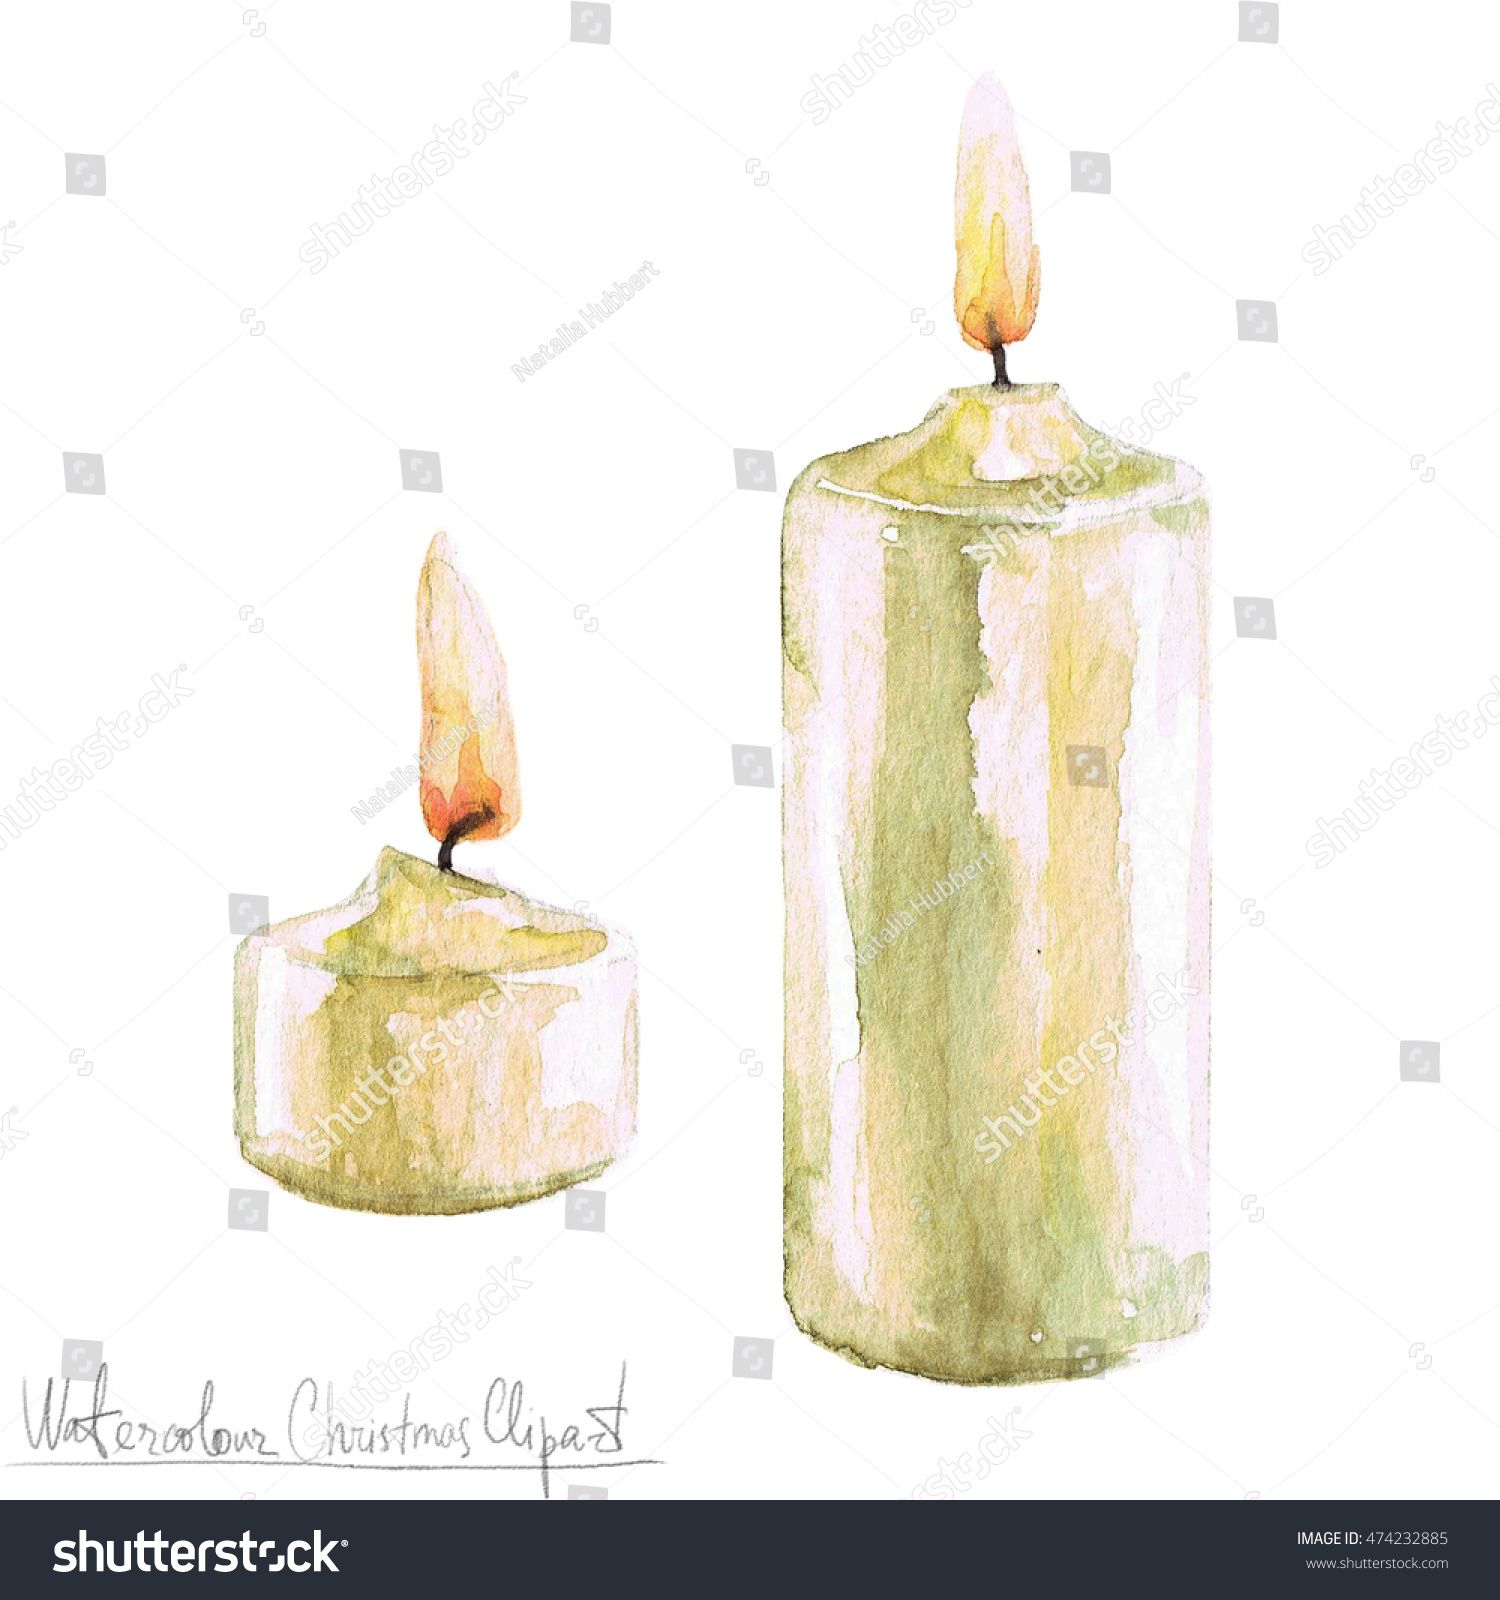 christmas watercolor candles Yahoo Image Search Results